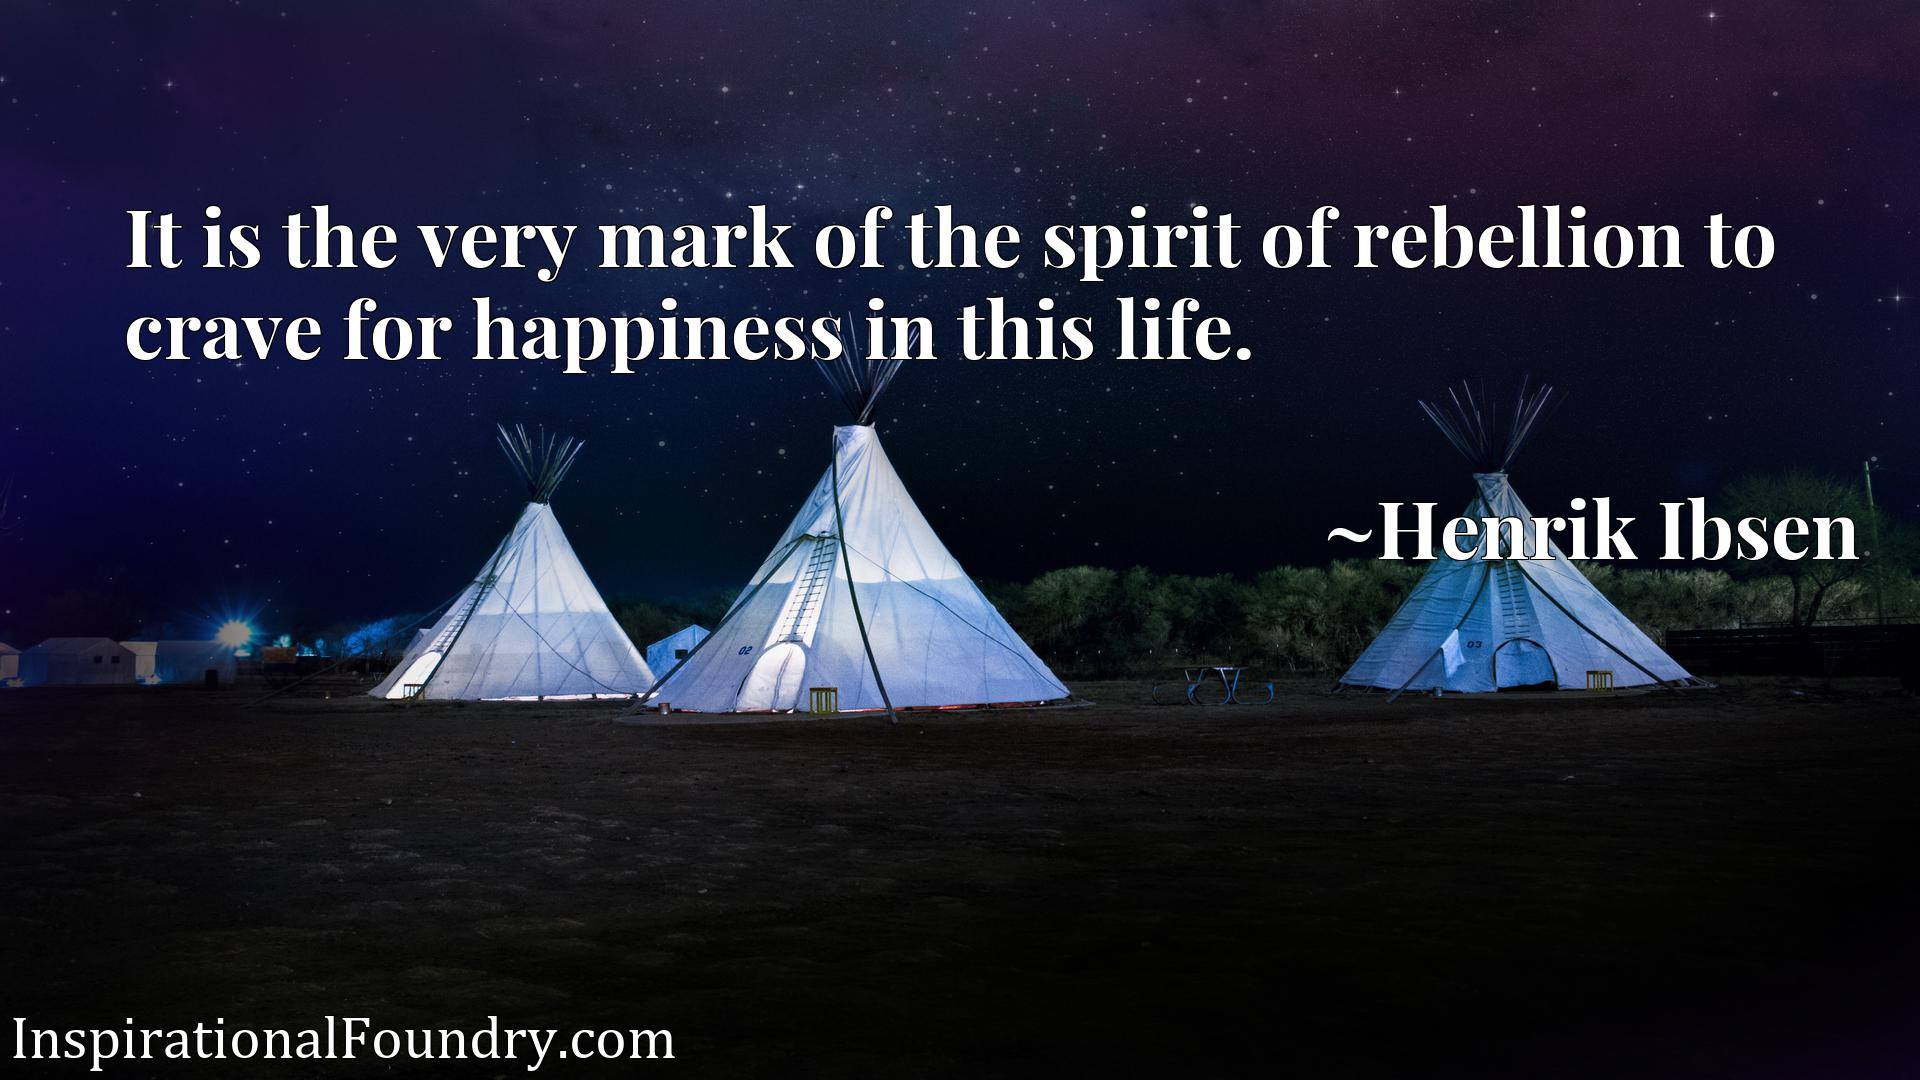 It is the very mark of the spirit of rebellion to crave for happiness in this life.